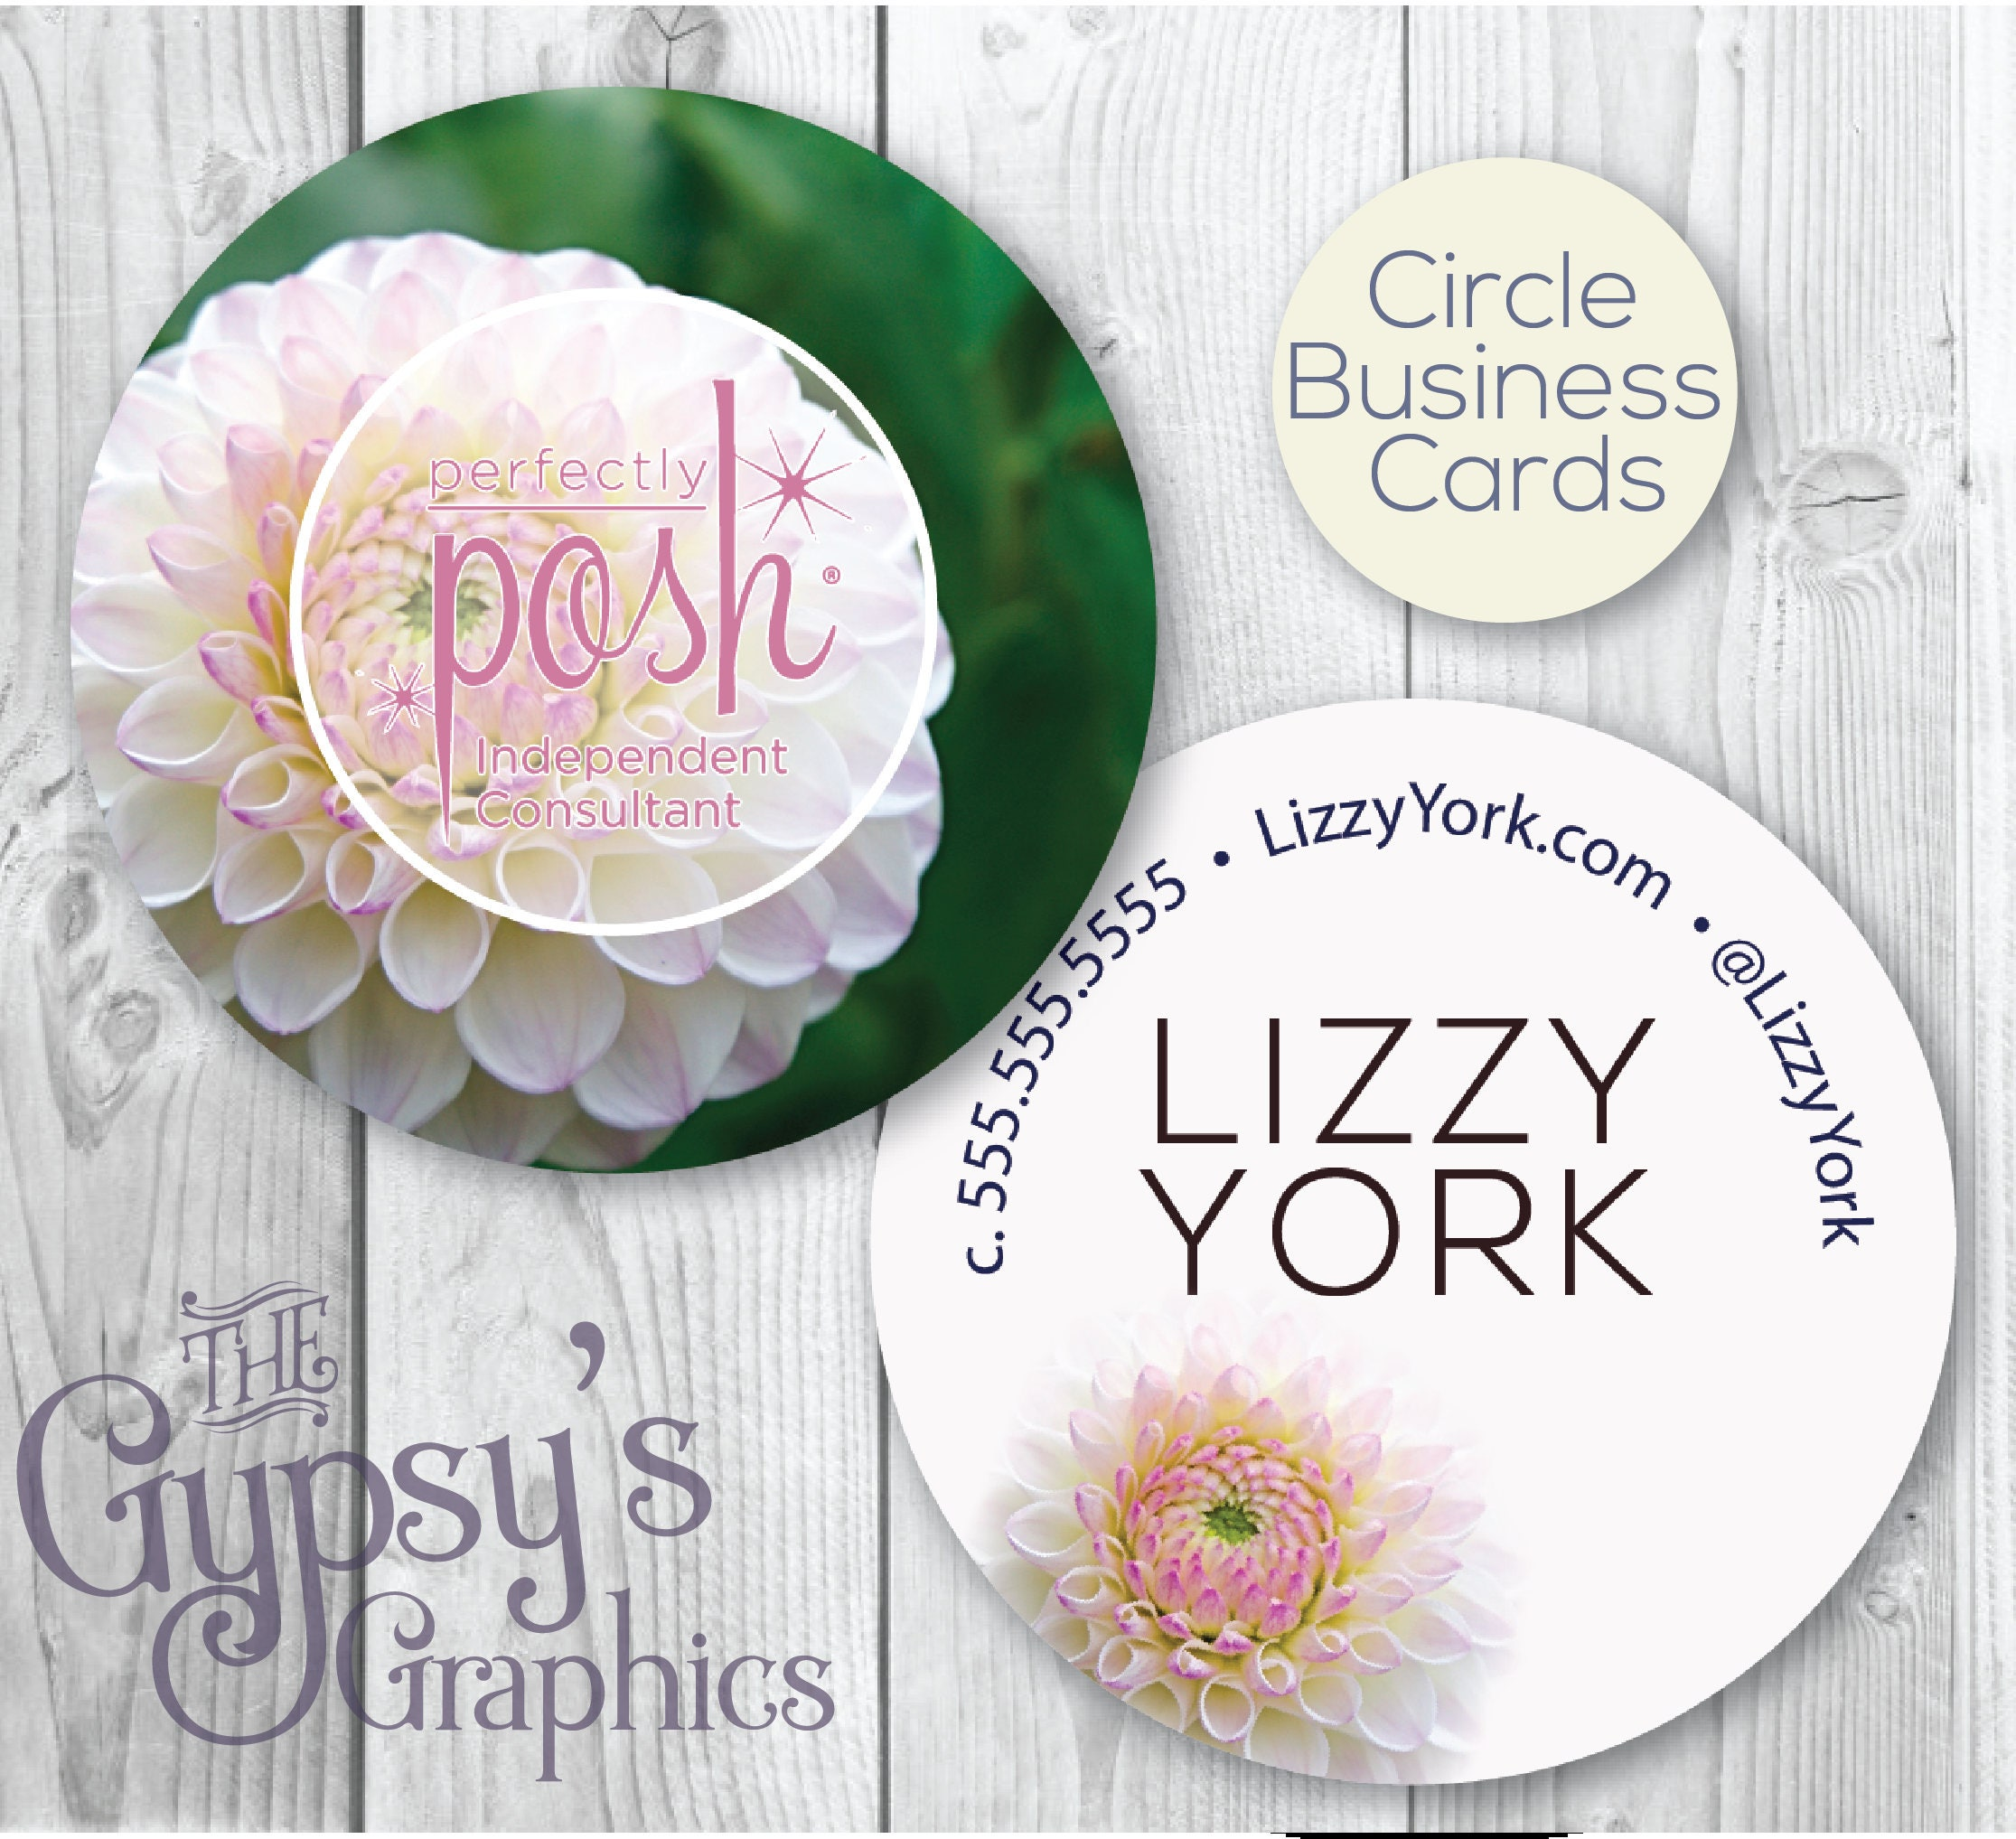 Perfectly Posh Business CardsDelilah DelightPerfectly Posh